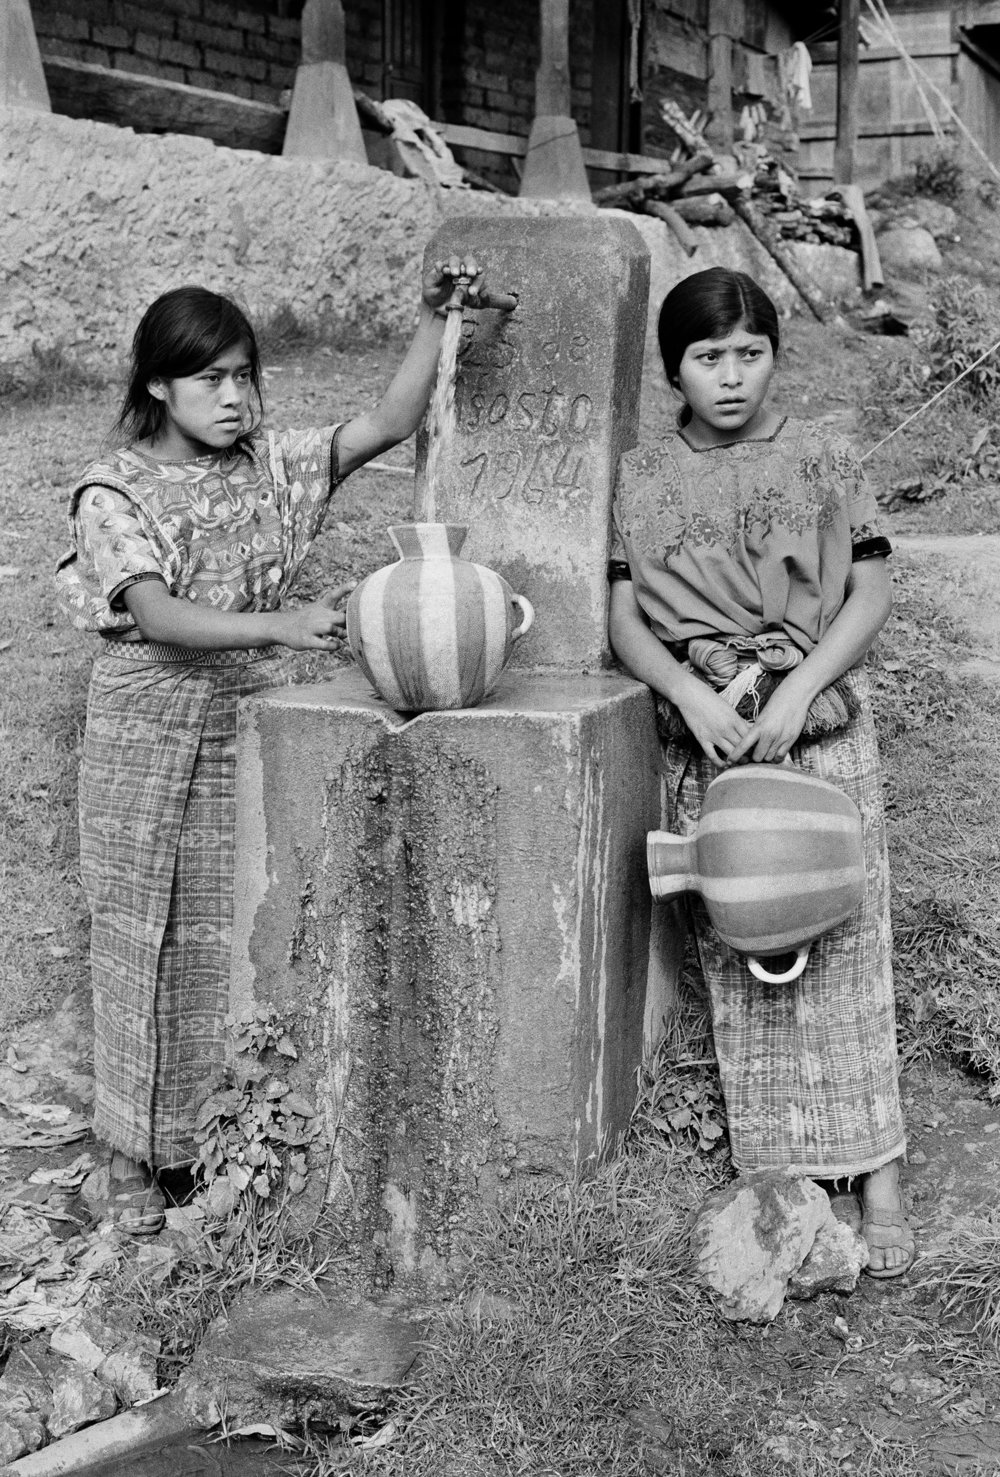 Two young Mayan Indian women retrieve water January 1982 following an early morning gun battle between leftist guerrillas from the Guerrilla Army of the Poor, EGP, and Guatemalan army soldiers stationed in San Juan Cotzal, Guatemala. Over one hundred EGP guerrillas attacked the highland base leaving twelve soldiers dead.